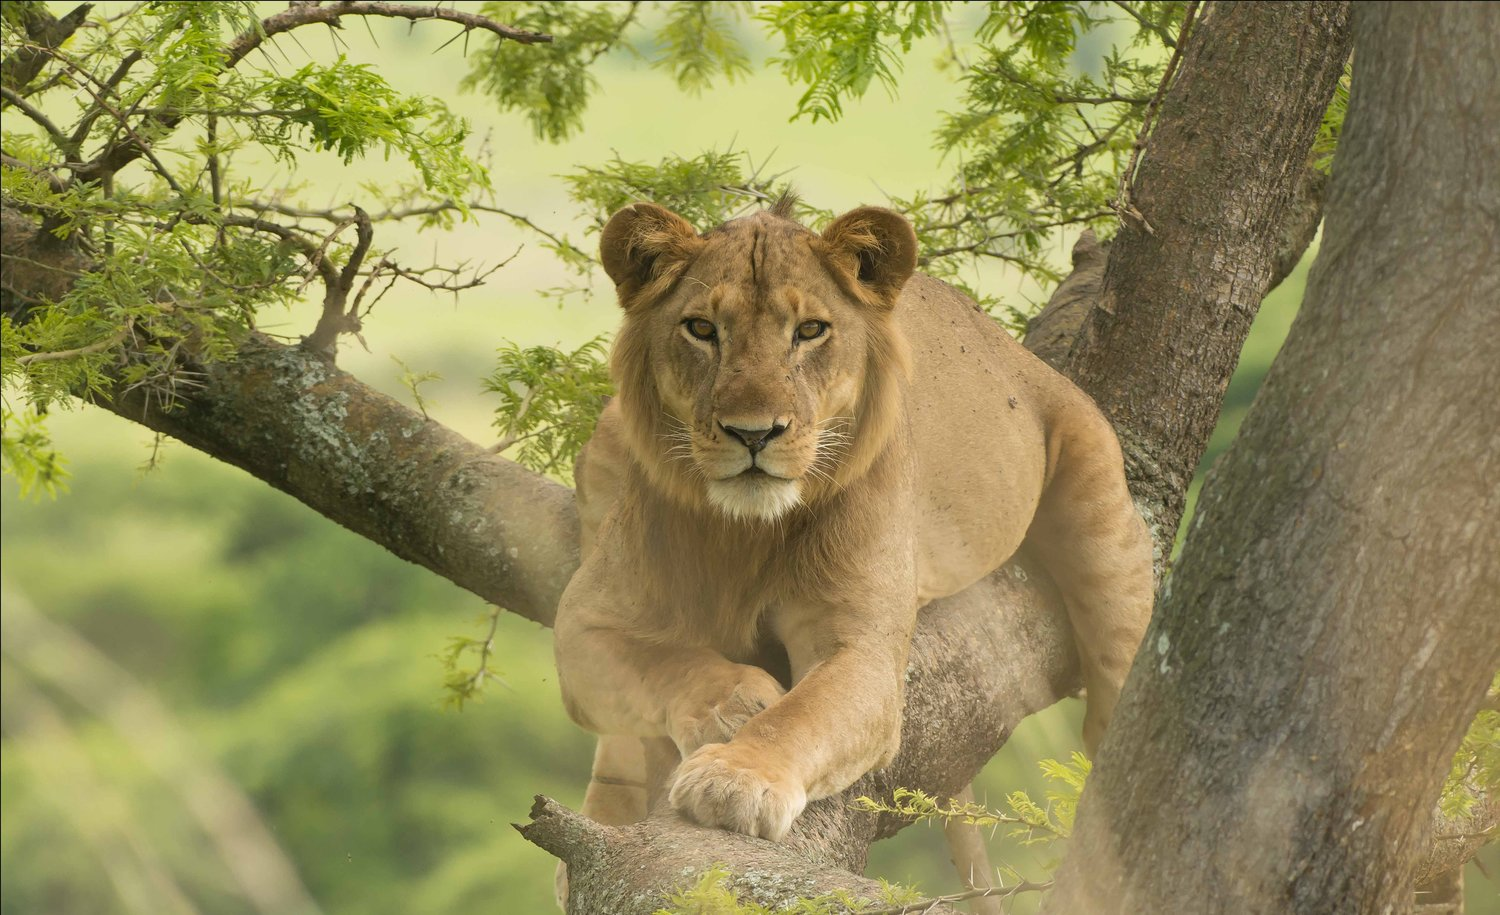 Uganda-Tree-climbing-Lion-by-Larry-Jackson-replace-Simons-image